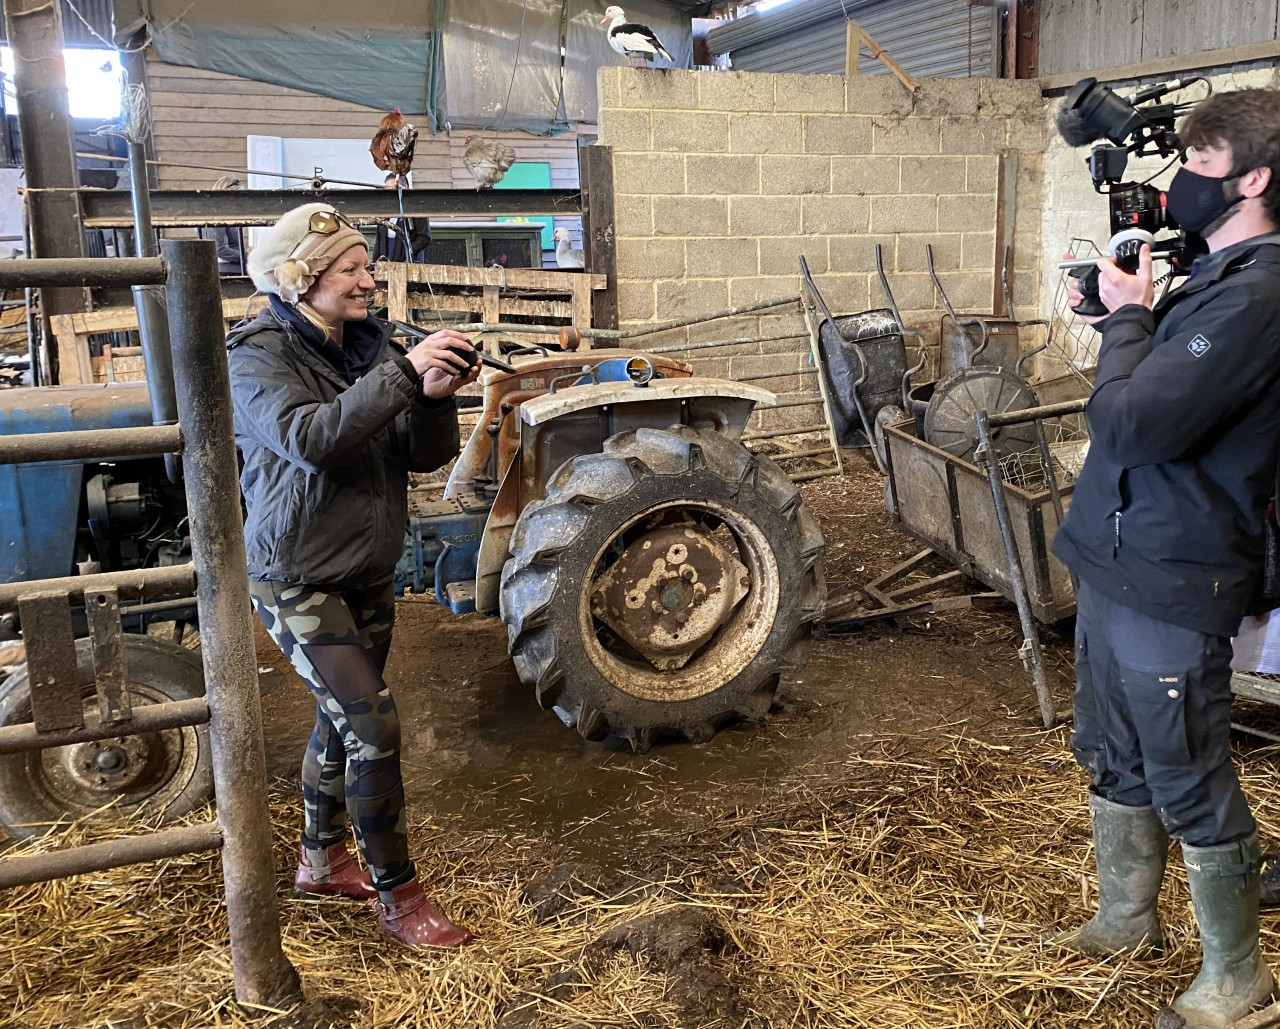 We are going on BBC Countryfile